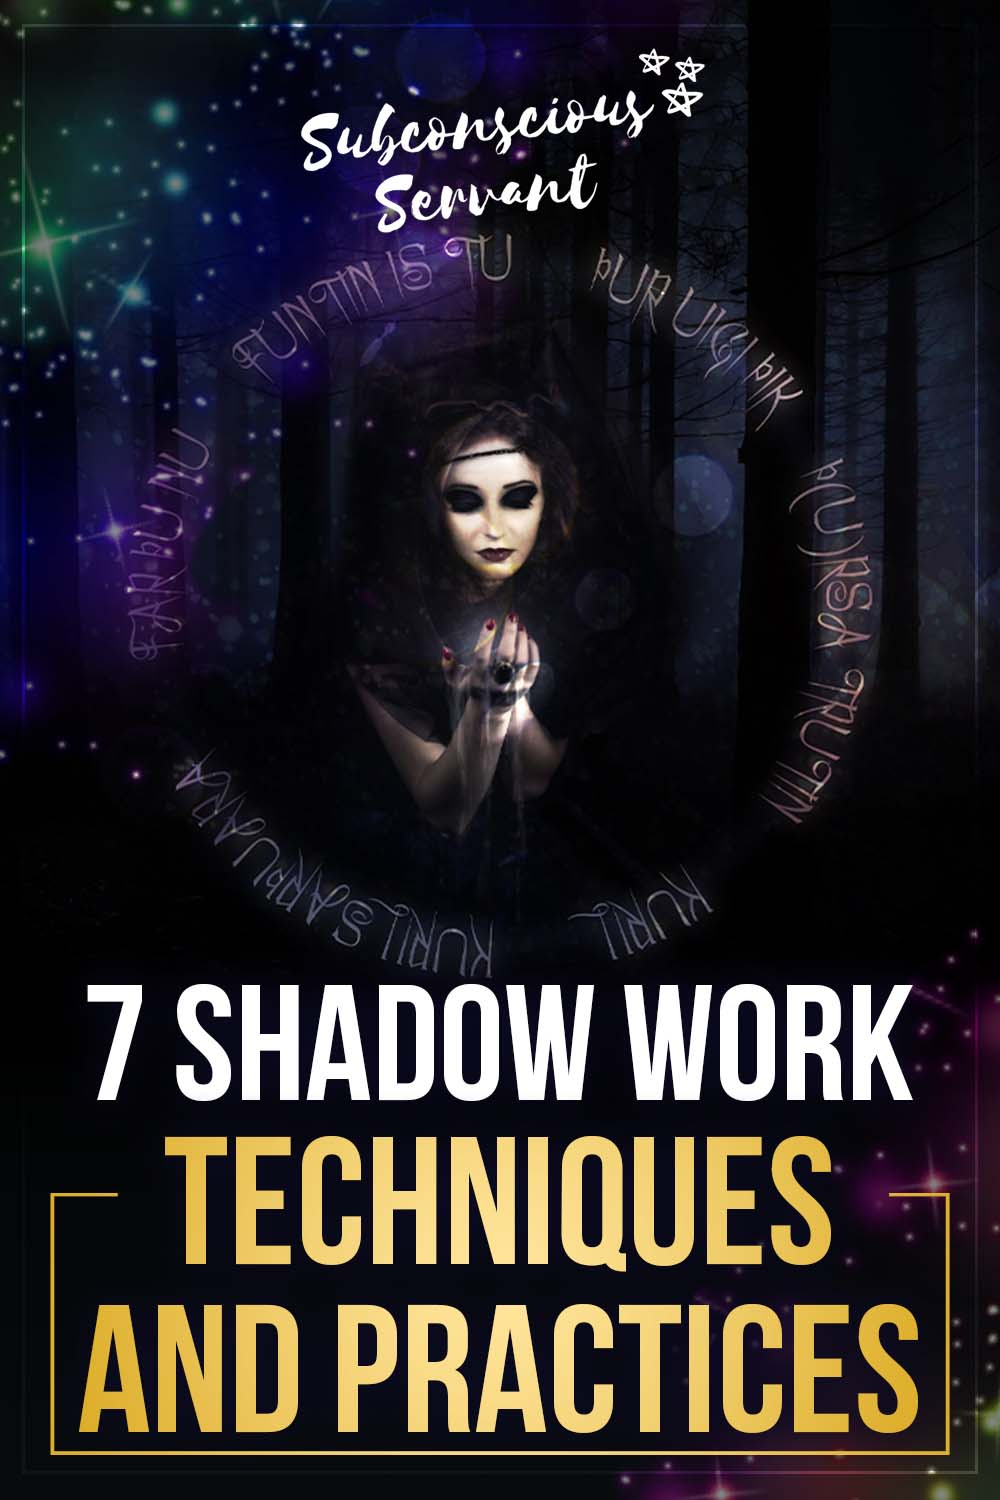 7 Powerful Shadow Work Techniques and Practices